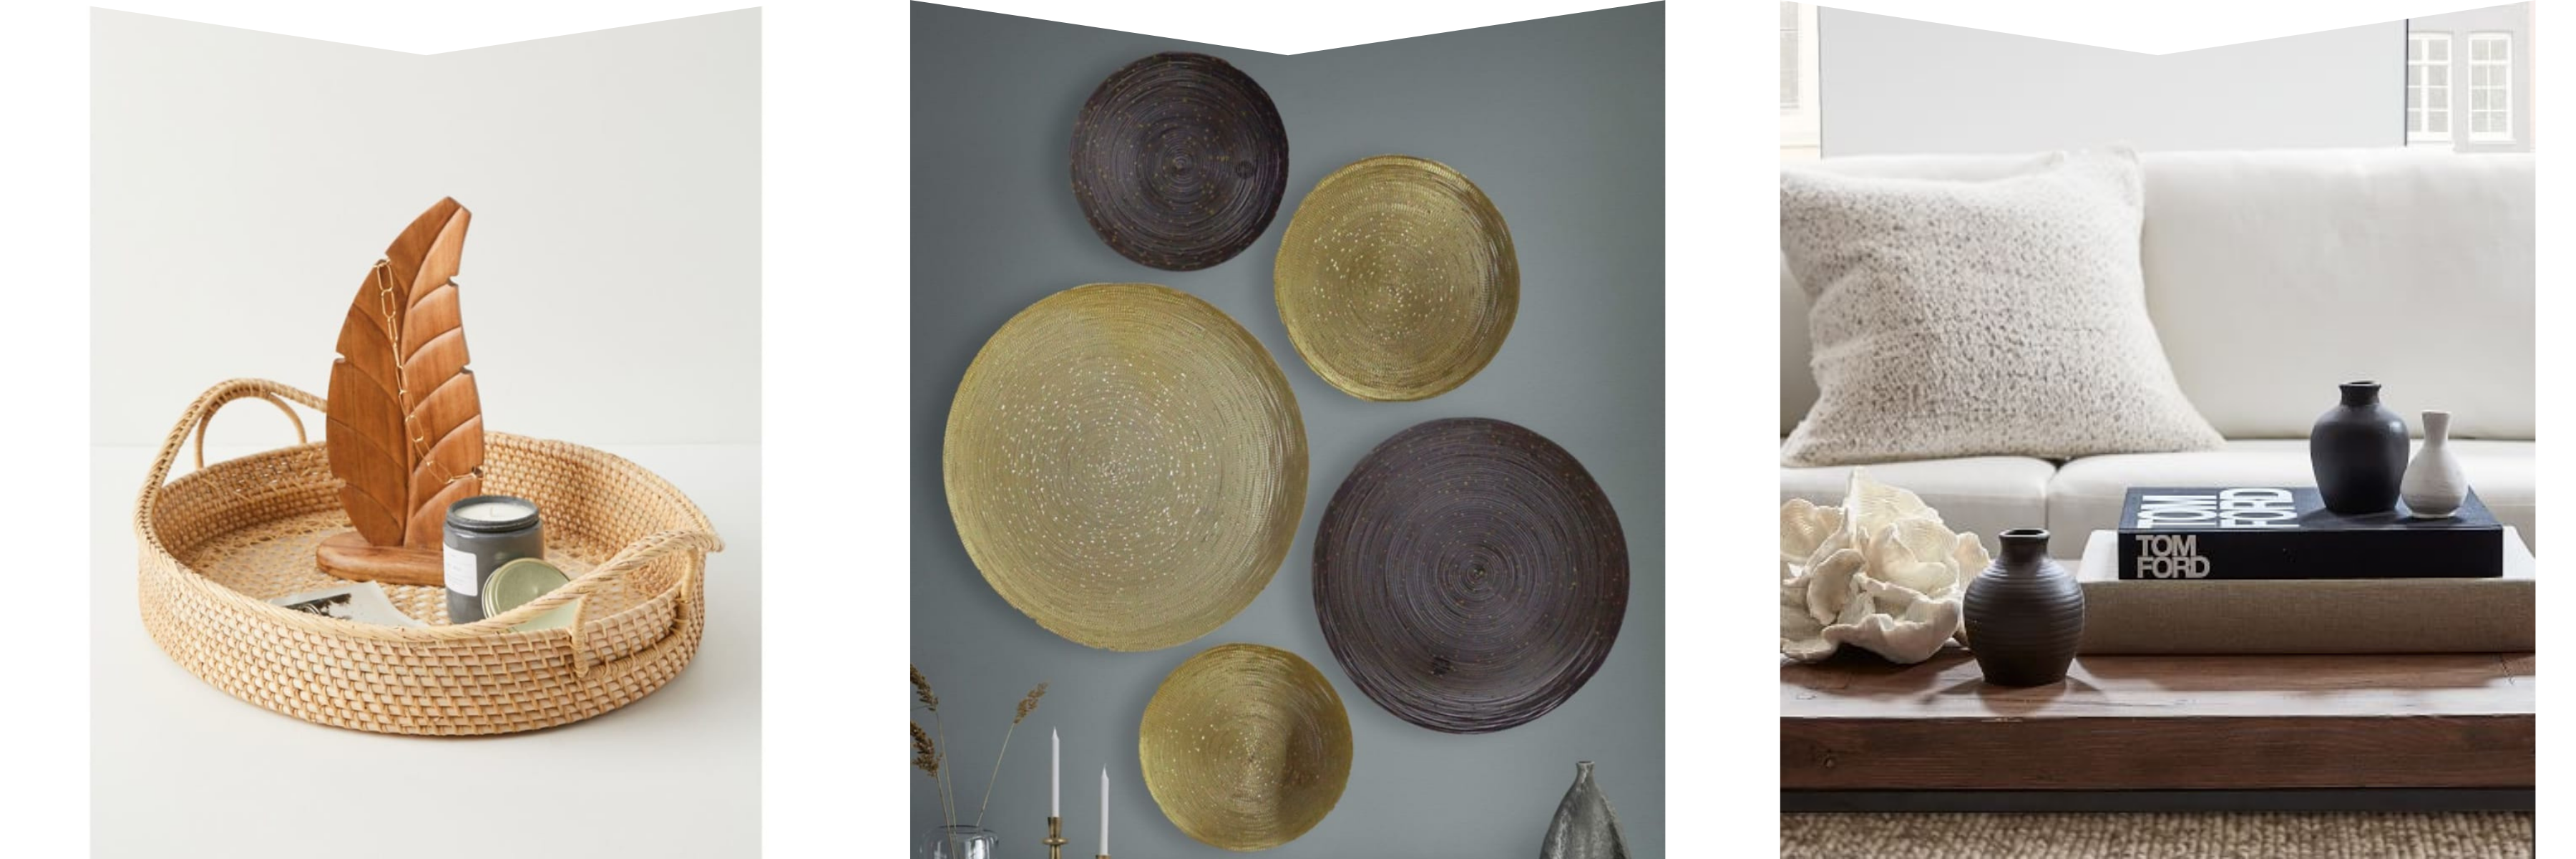 Oval rattan tray, wall plate decor, Tom Ford coffee table book